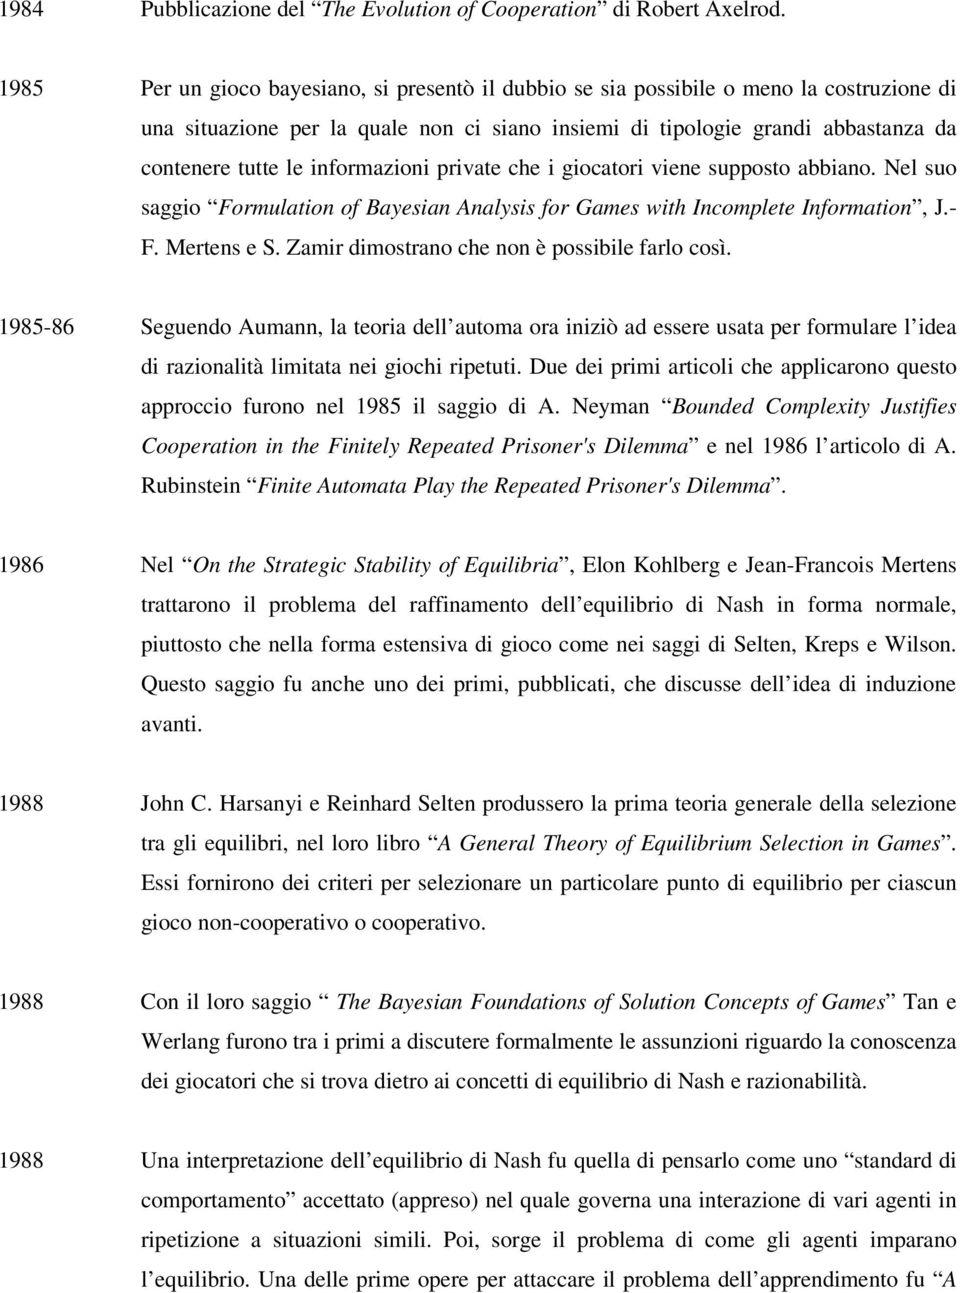 informazioni private che i giocatori viene supposto abbiano. Nel suo saggio Formulation of Bayesian Analysis for Games with Incomplete Information, J.- F. Mertens e S.